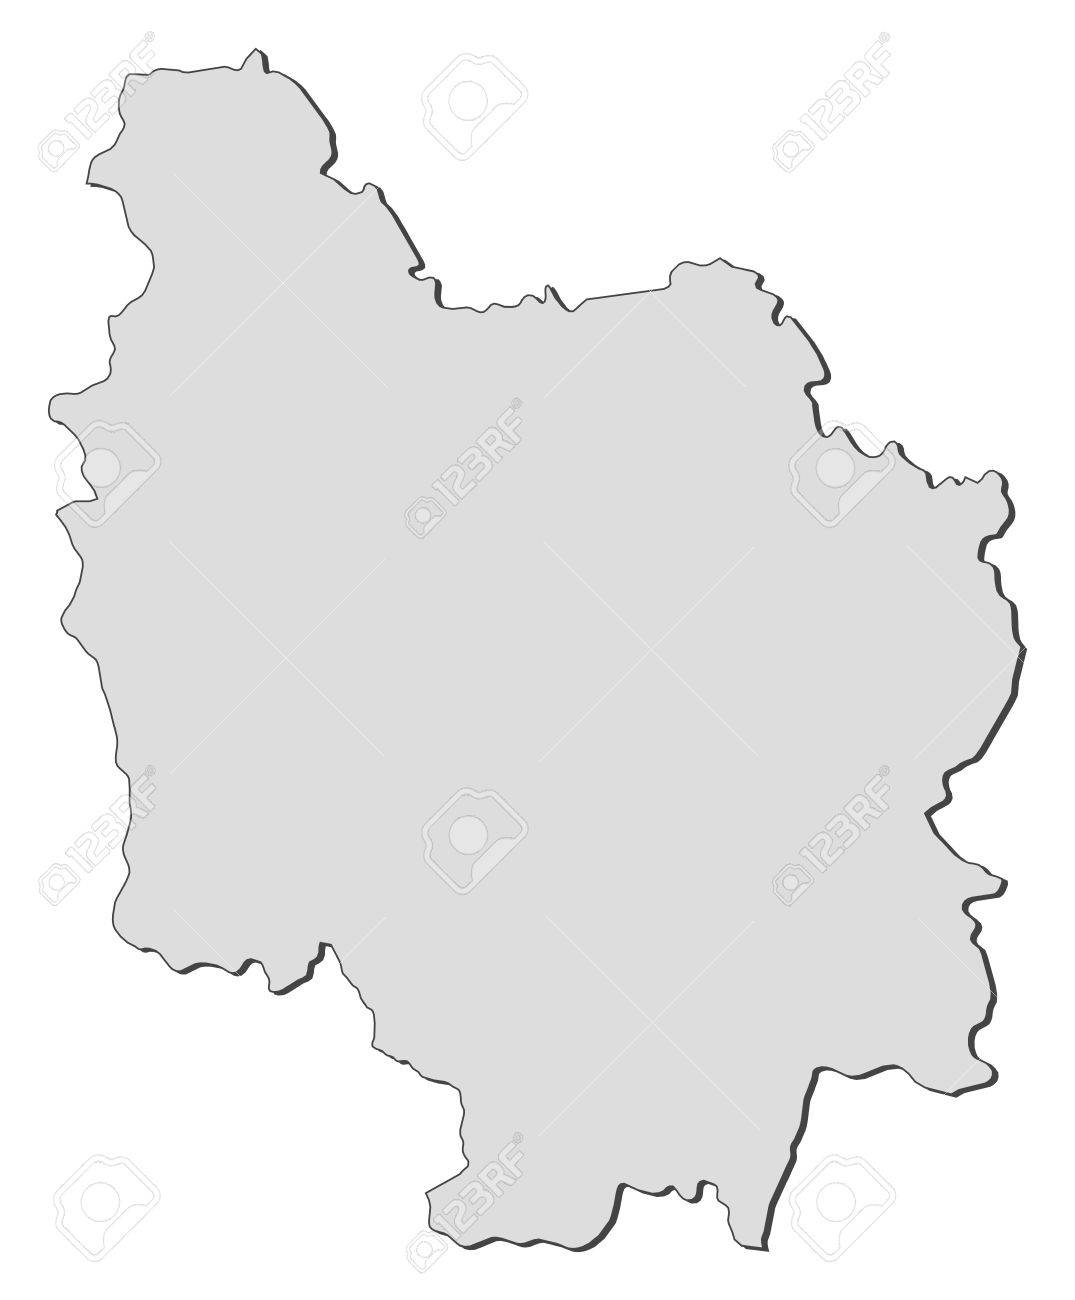 map of burgundy a region of france royalty free cliparts